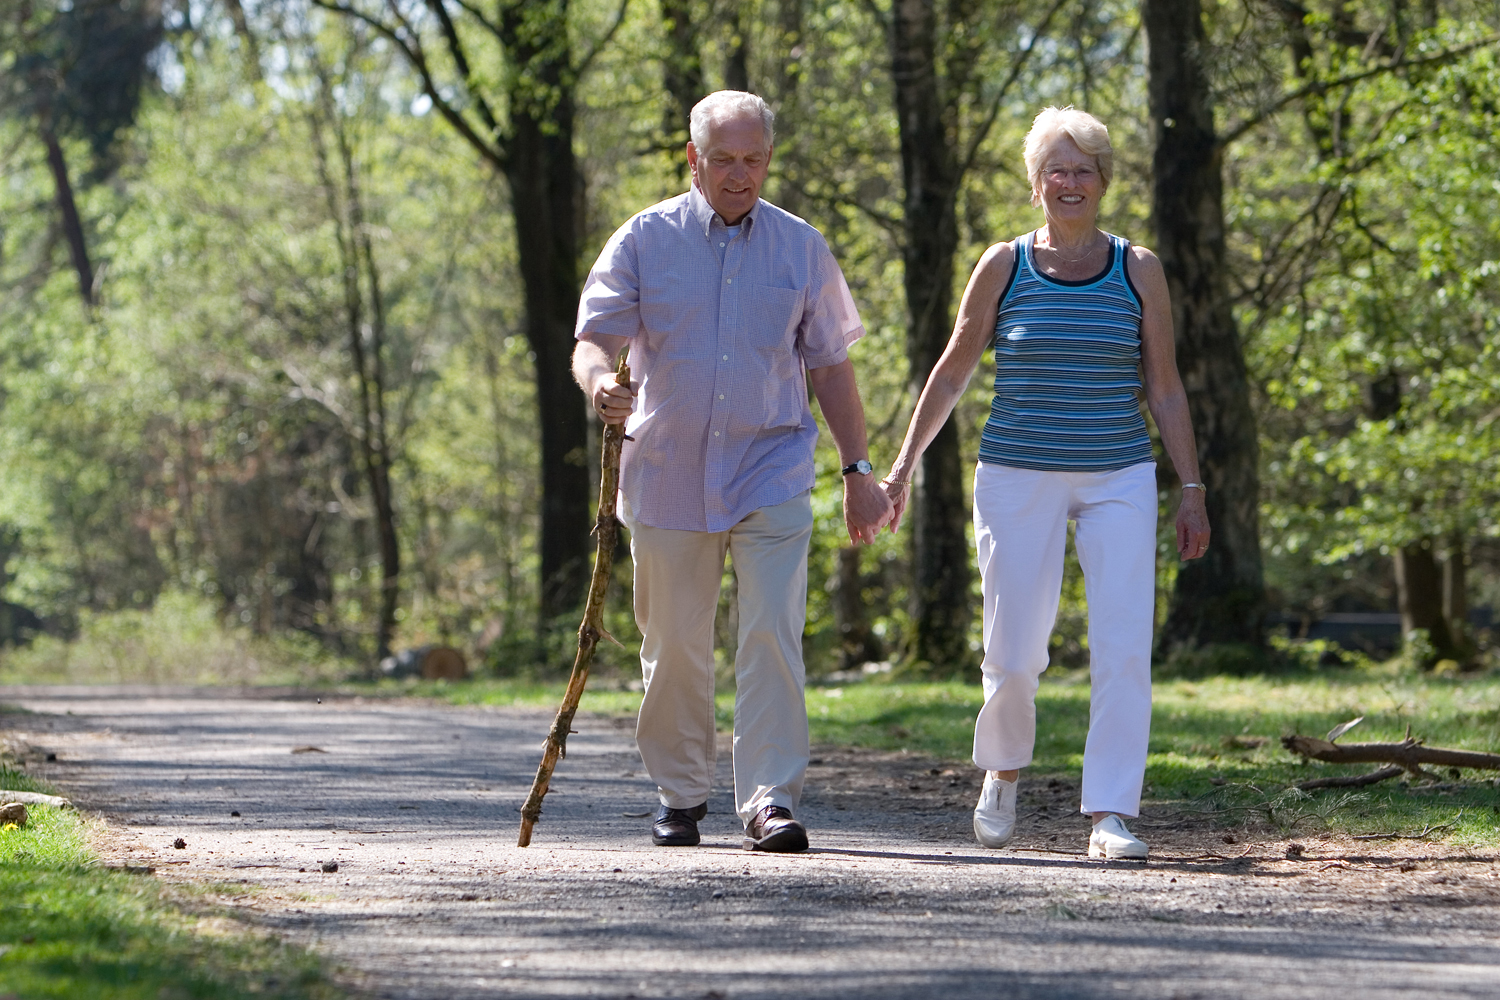 Walking Speed Connected to Lower Risk of Heart Disease in Older Adults